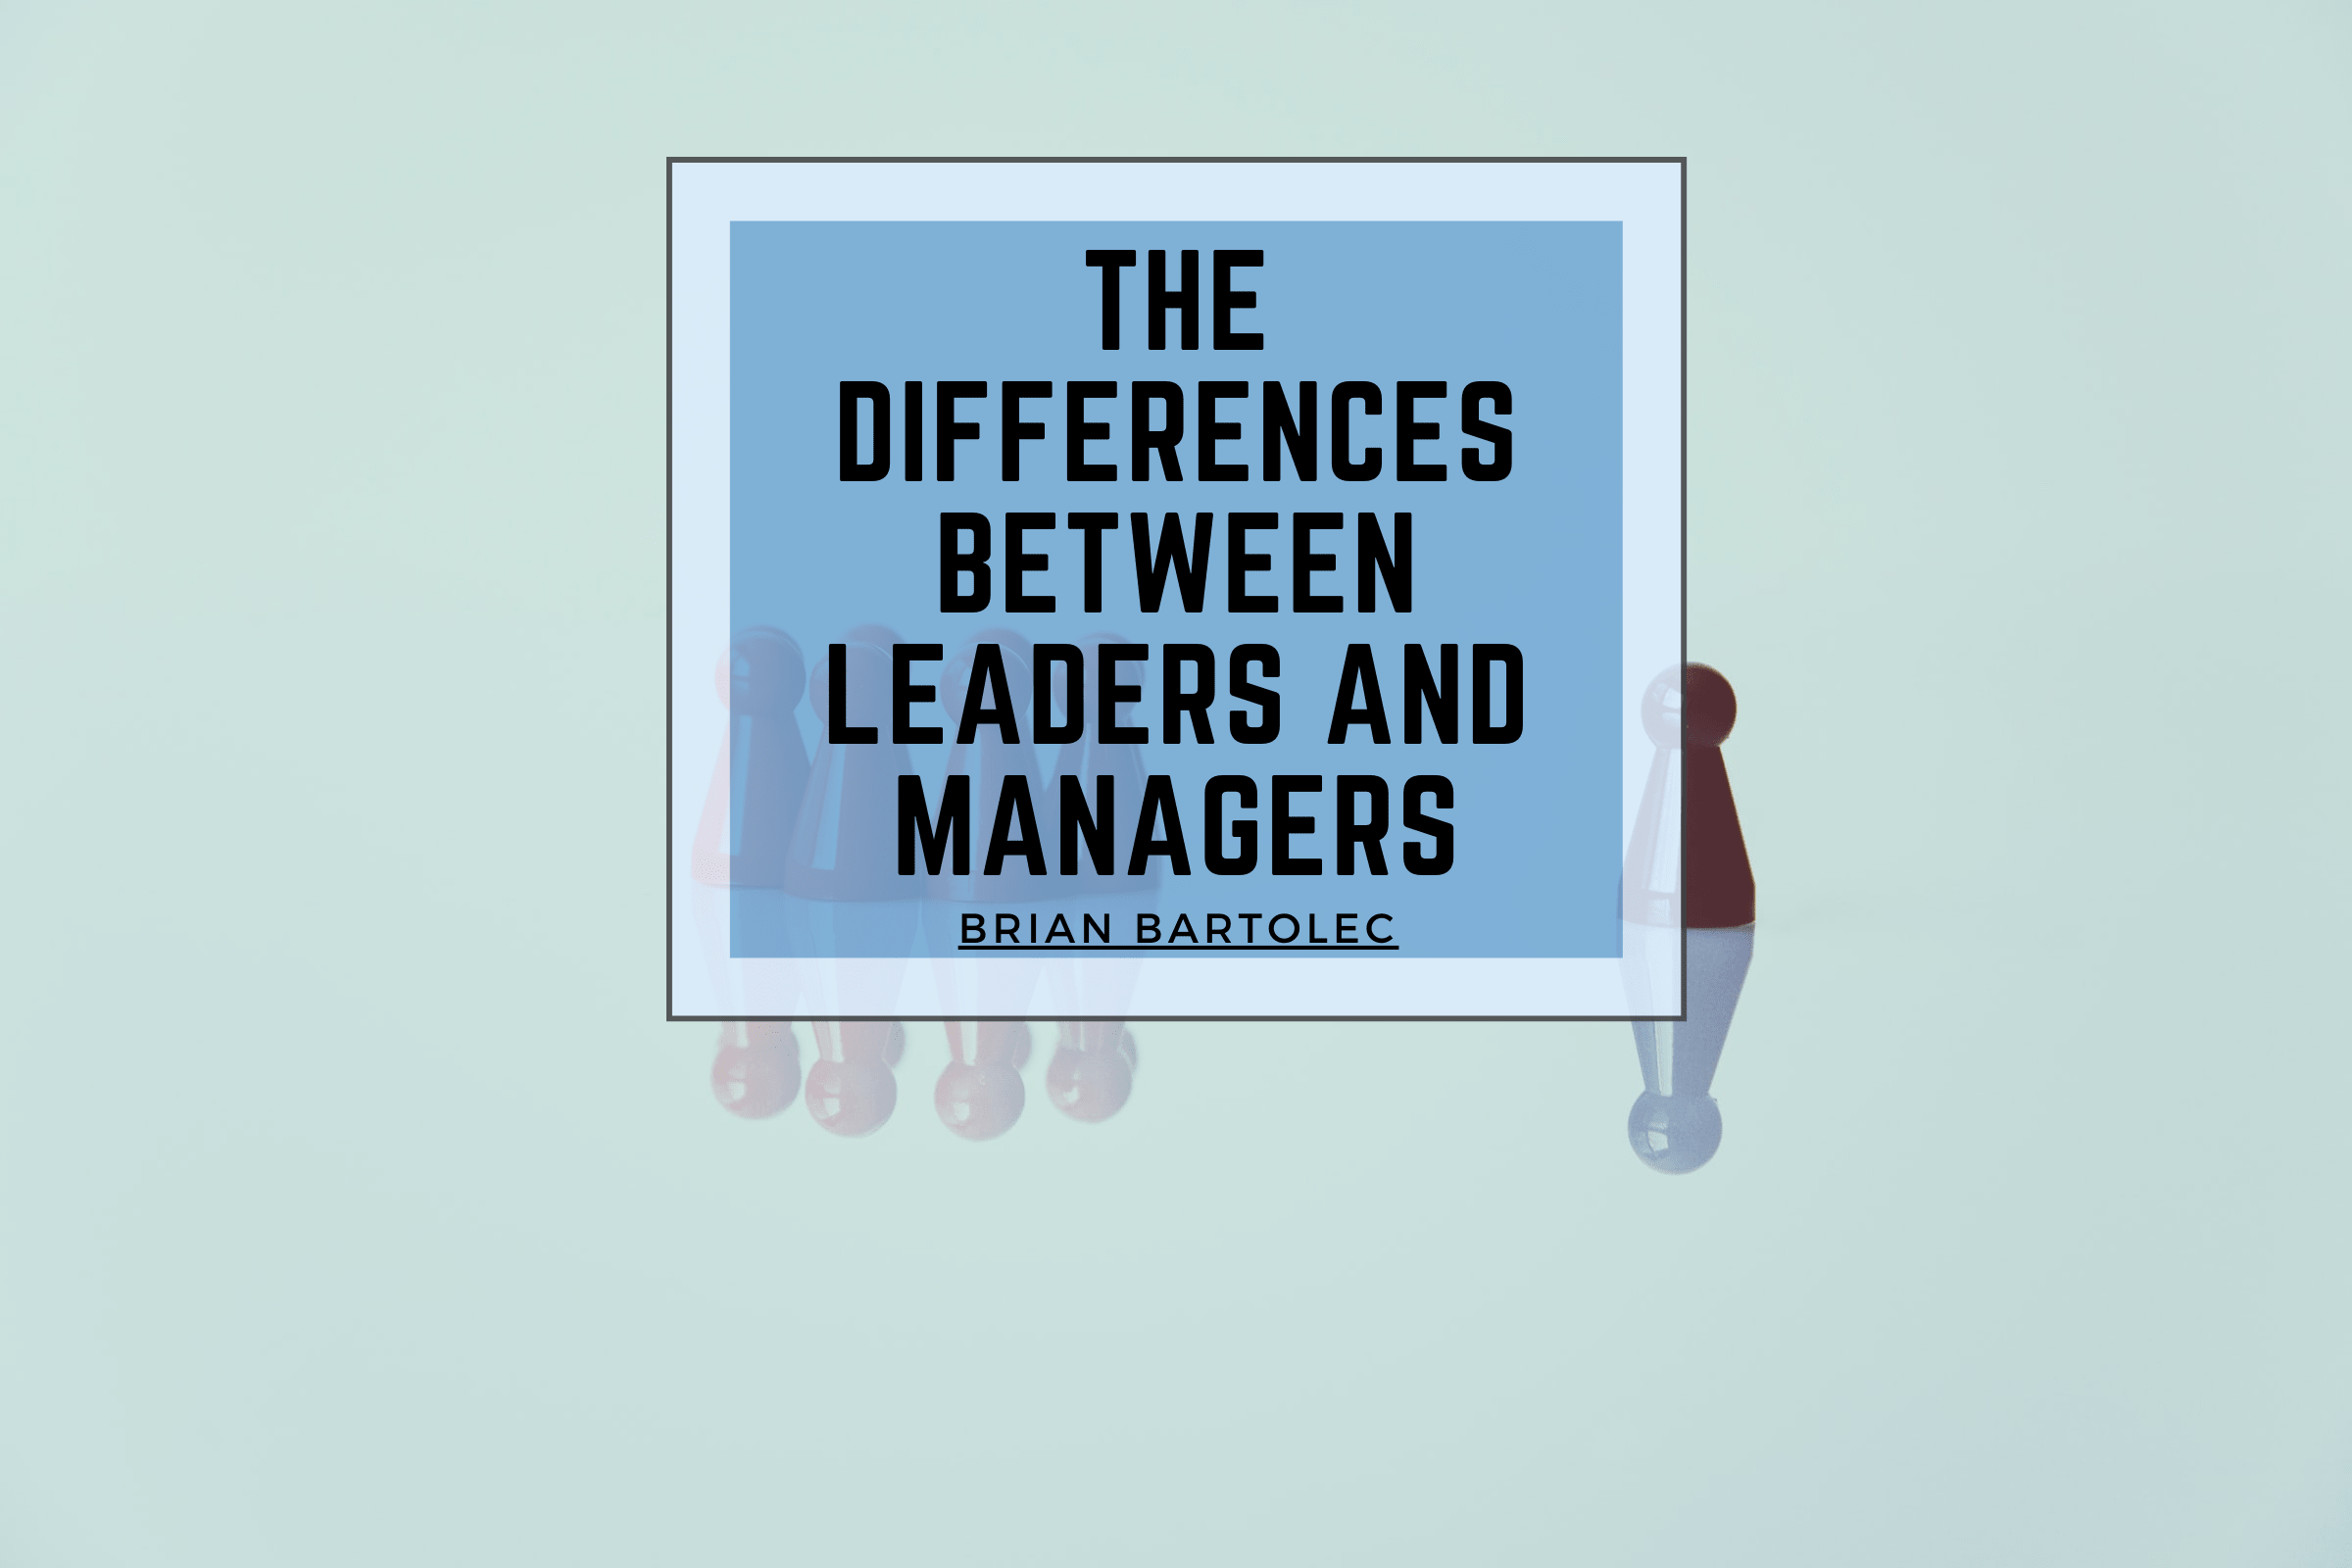 the-differences-between-leaders-and-managers